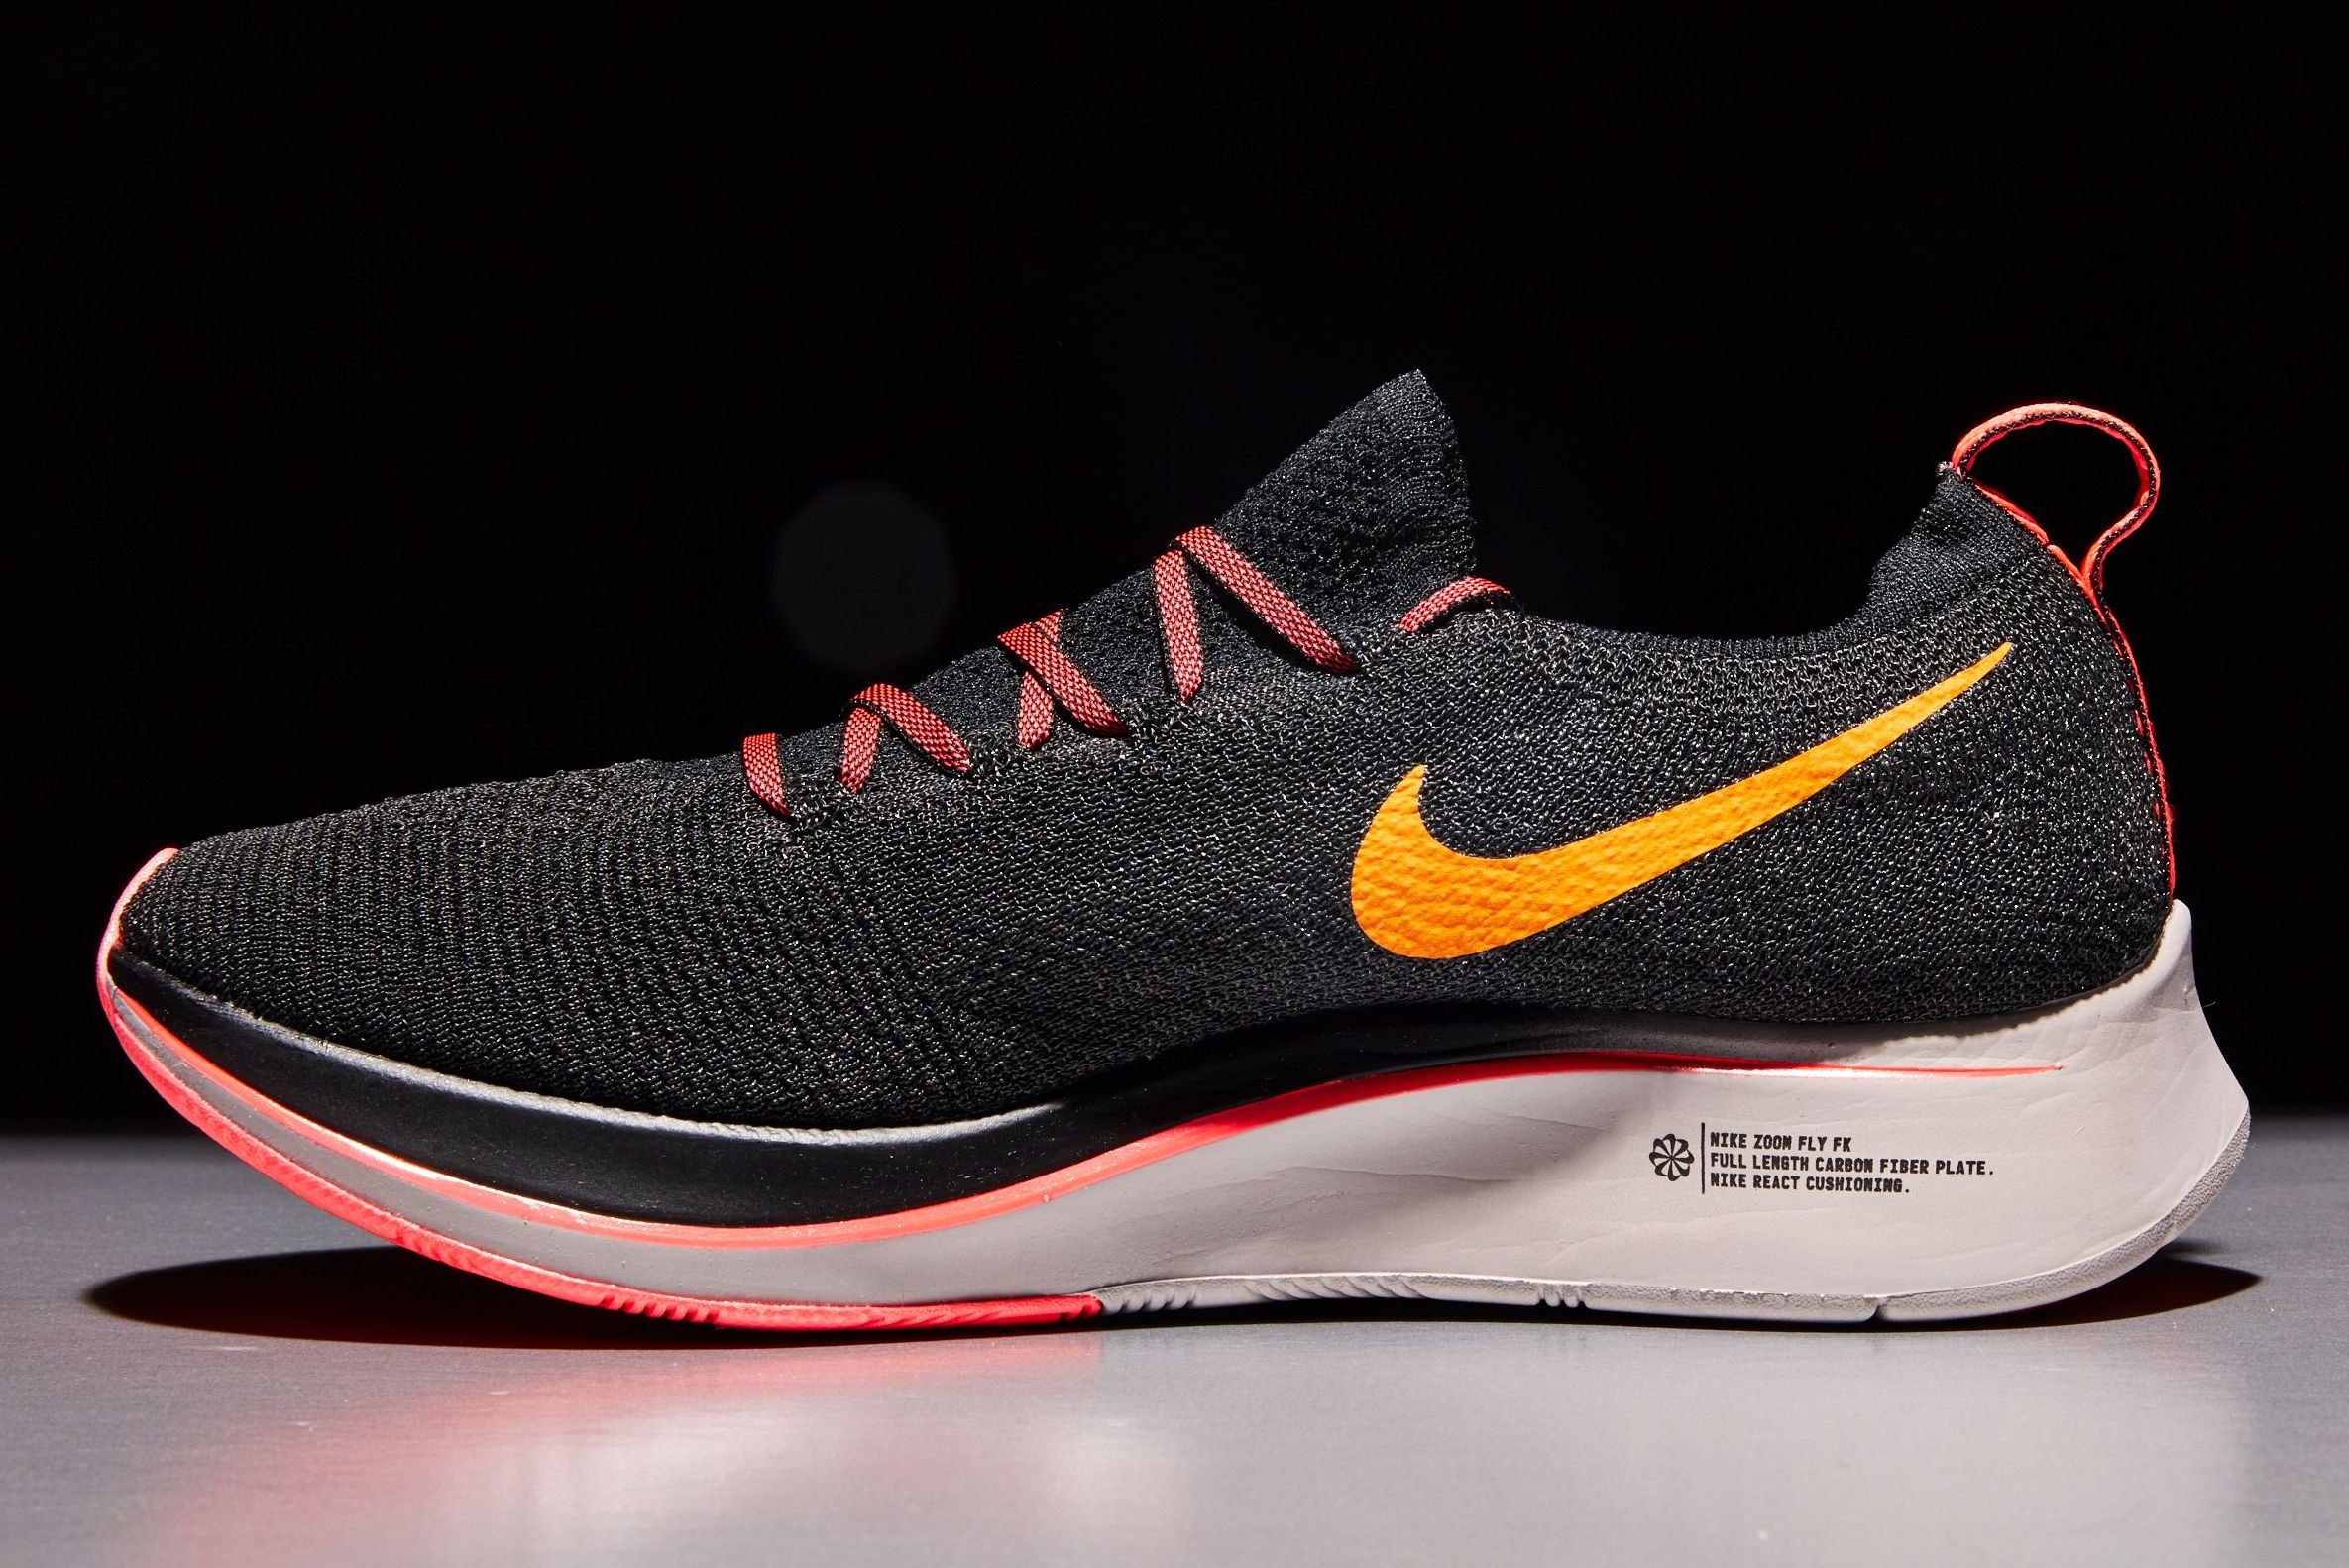 dad8c3ae2b84 Nike Zoom Fly Flyknit Review - Nike Running Shoes